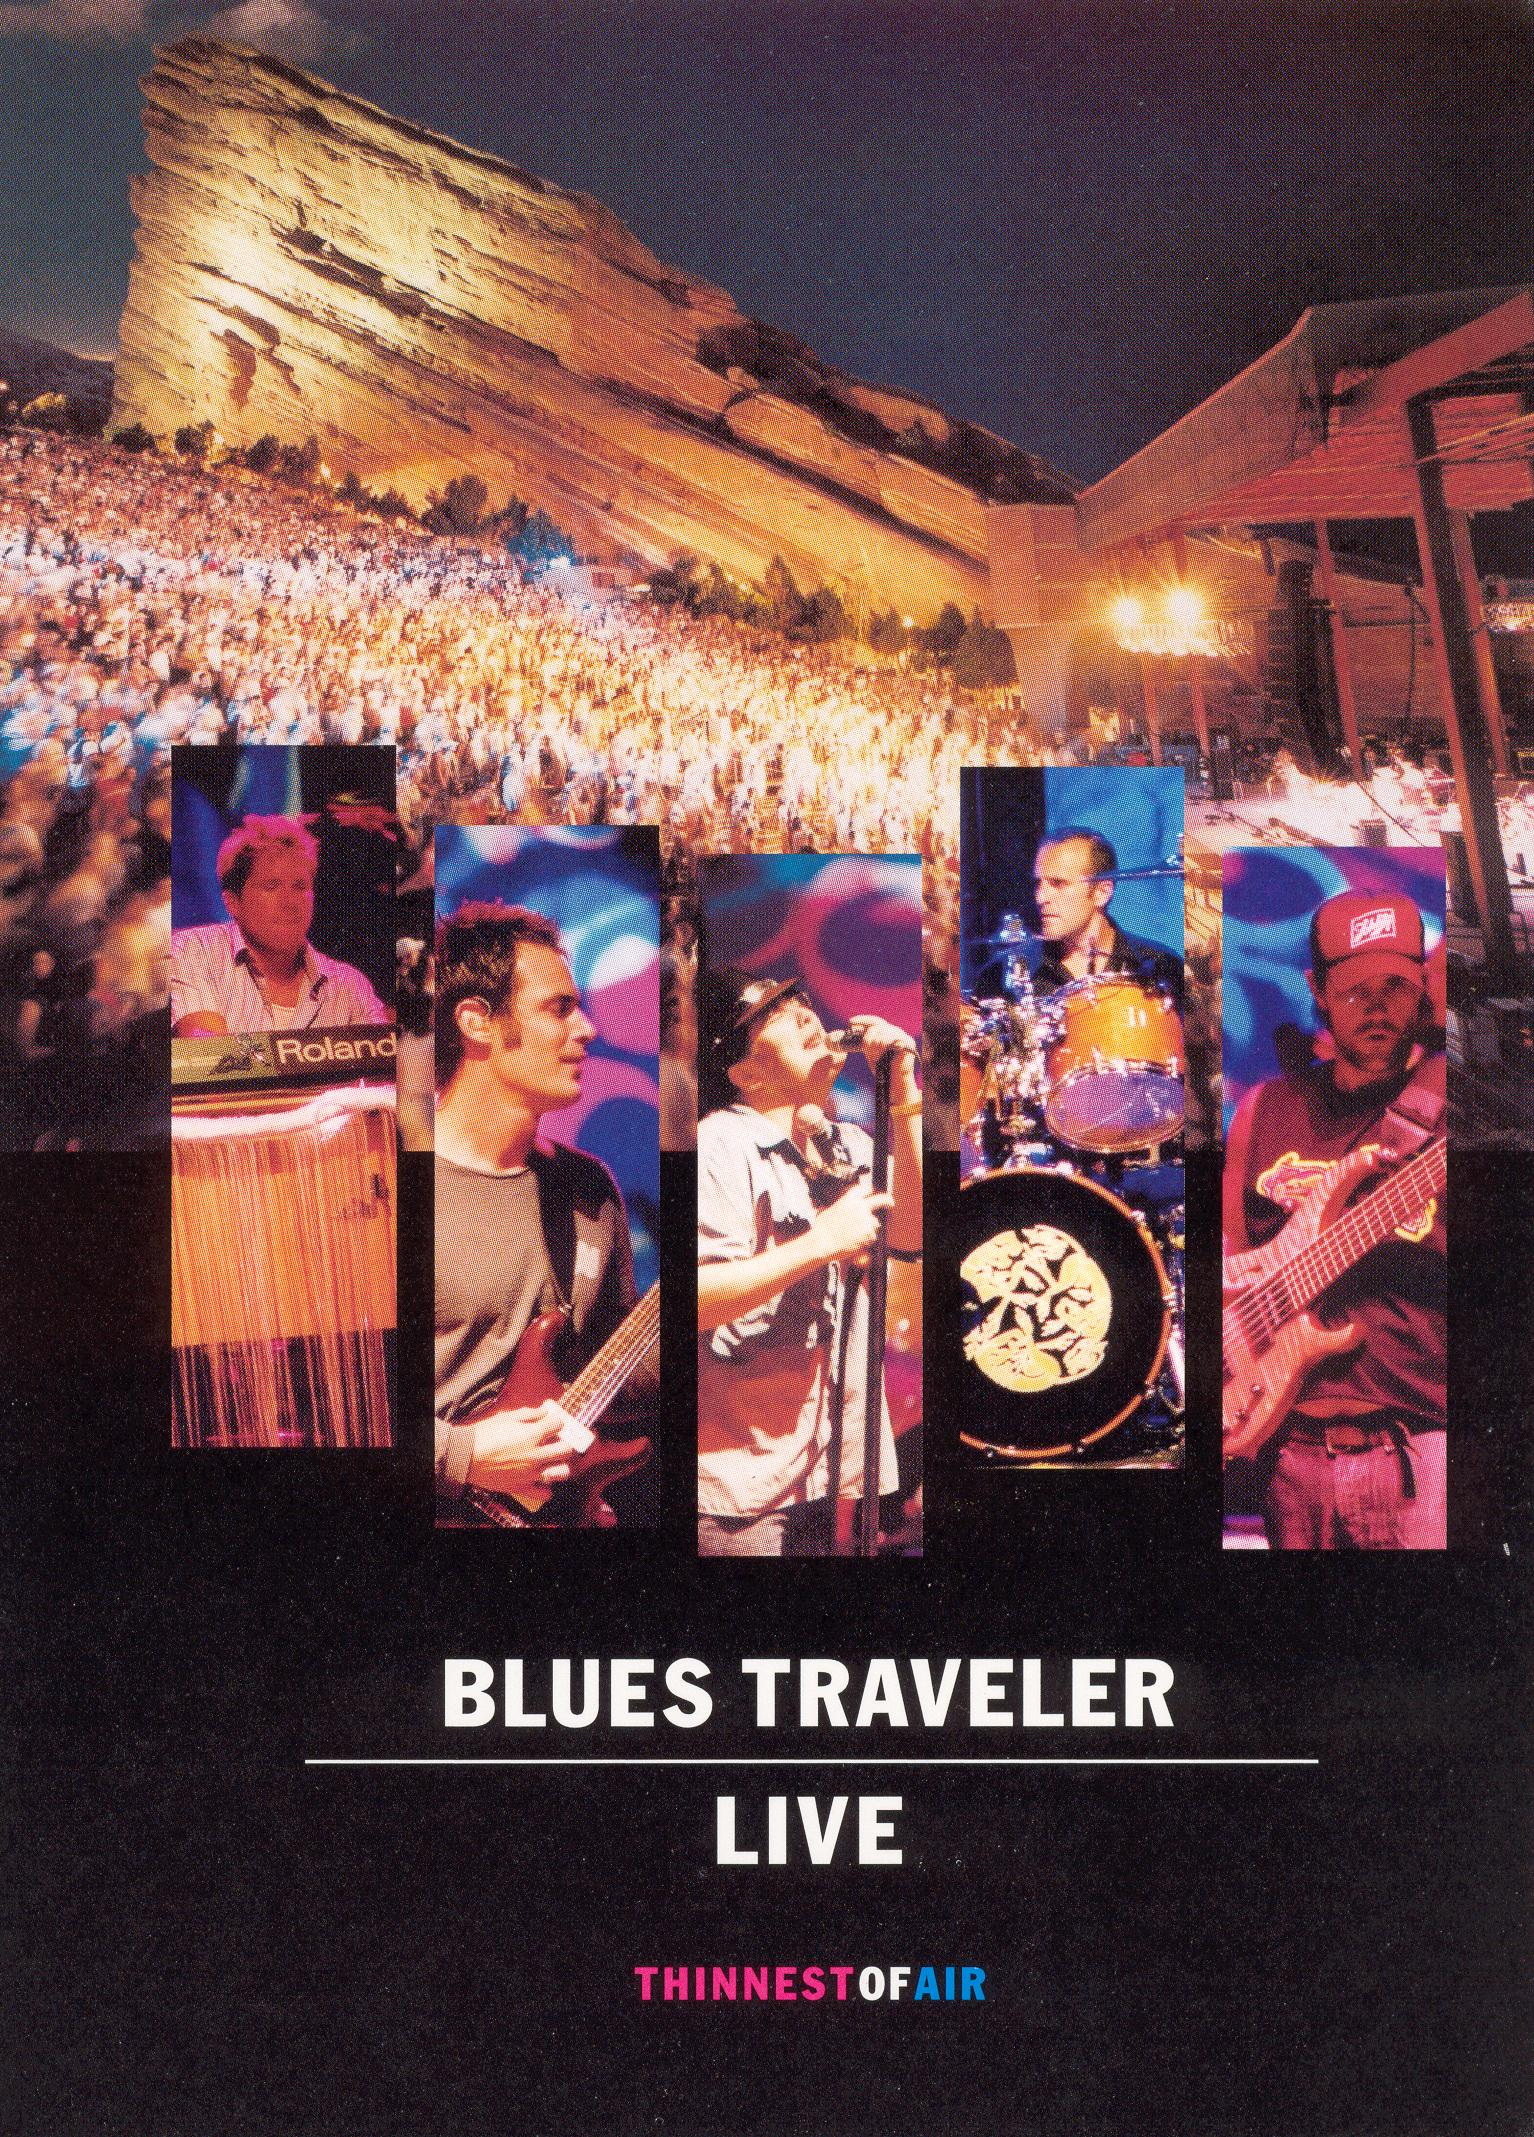 Blues Traveler: Live - Thinnest of Air